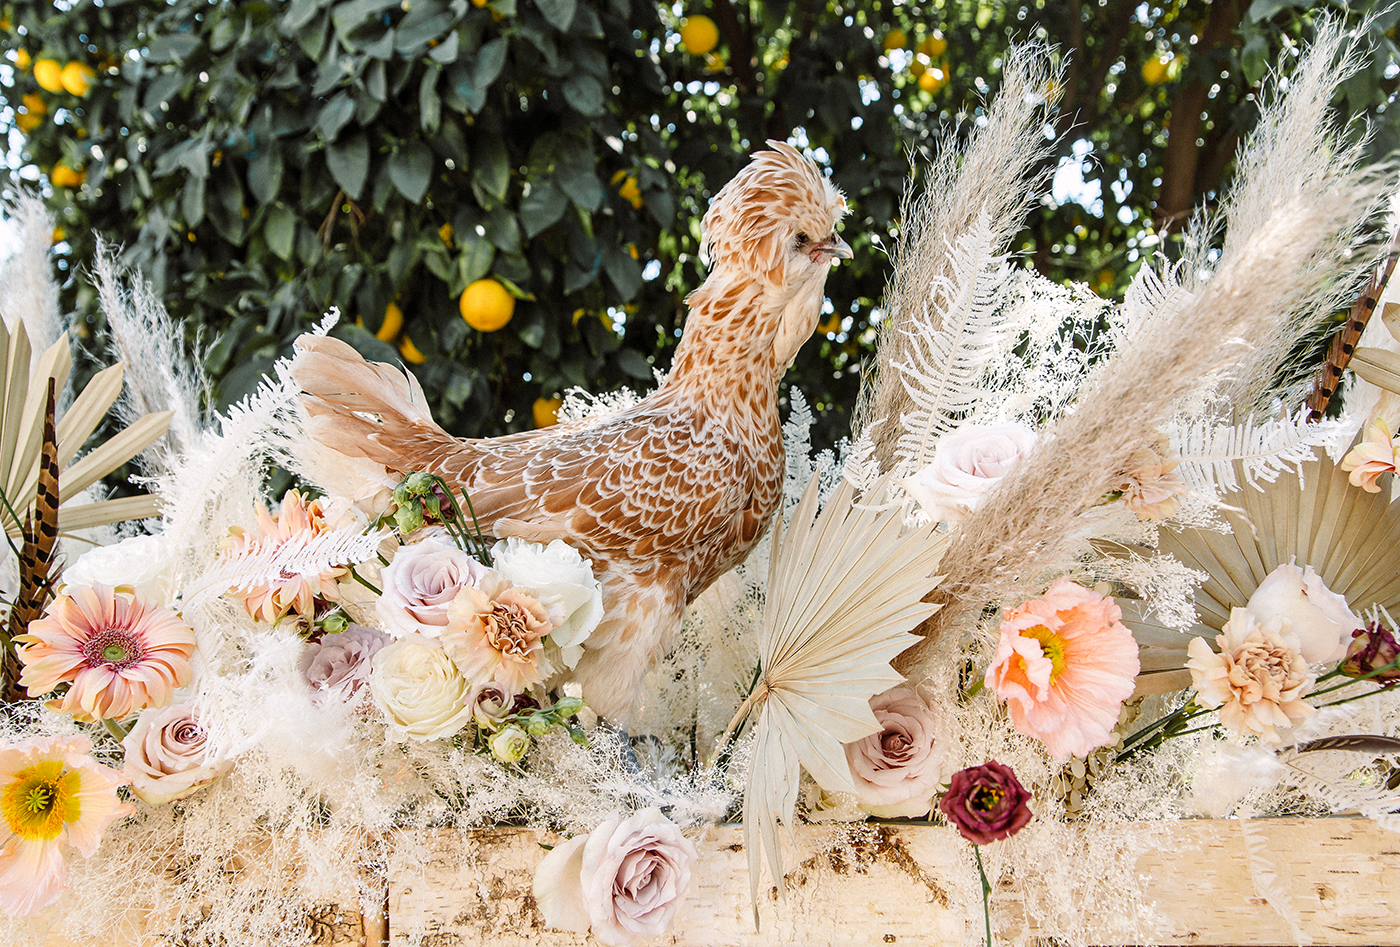 A chicken frolicking in the floral centerpiece | drinkingwithchickens.com